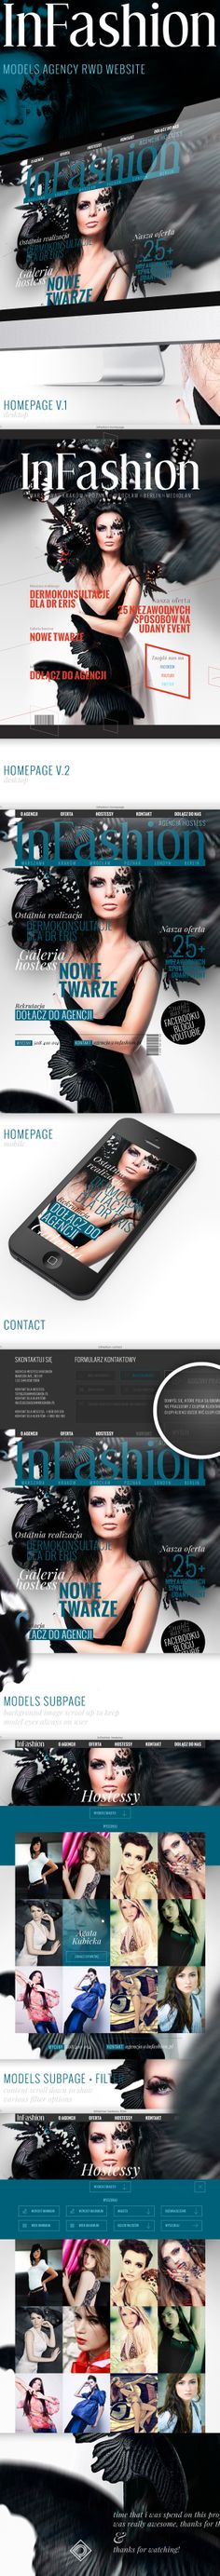 InFashion by Patryk Ciacma, via Behance